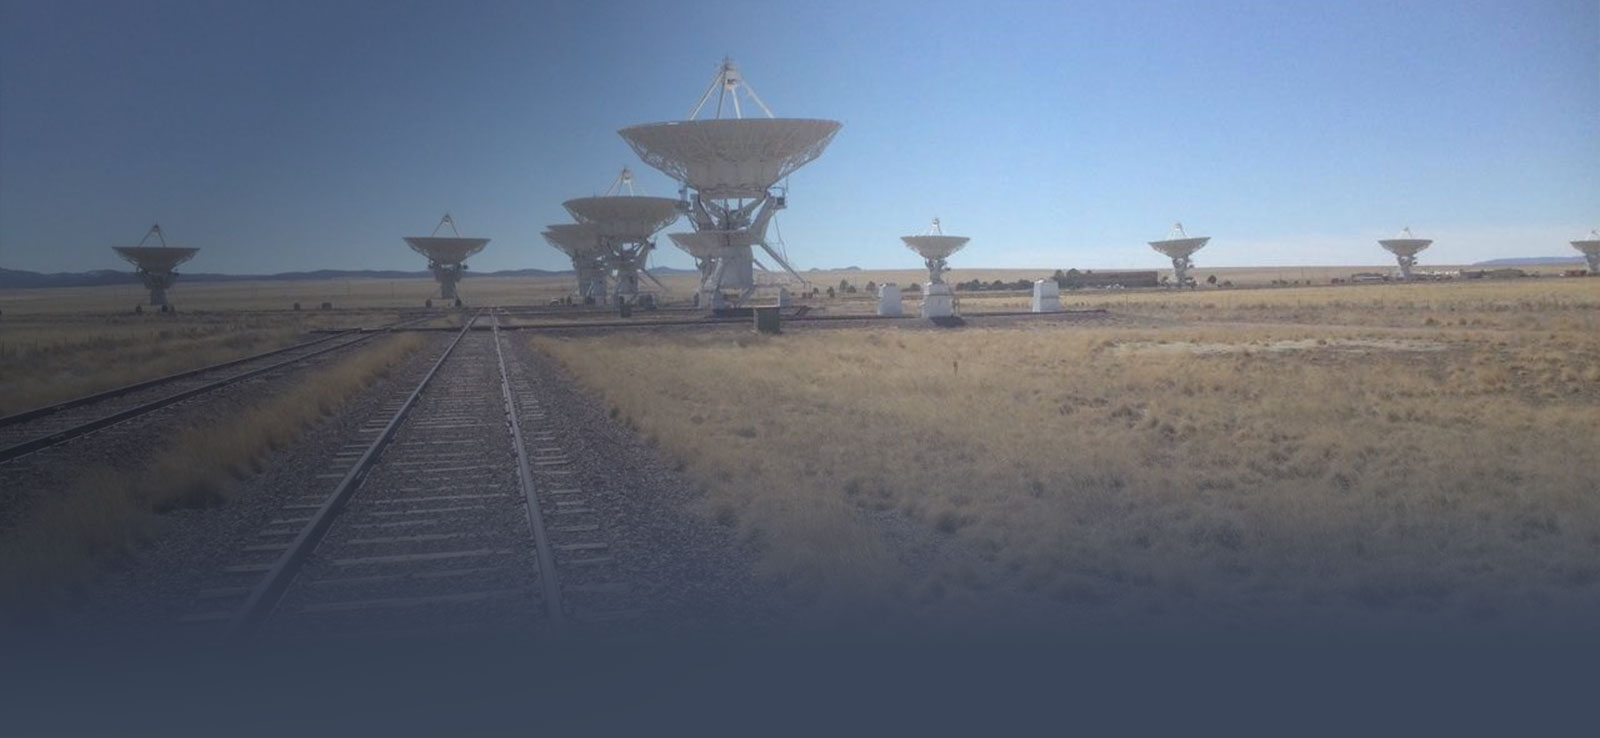 Satellites at the Very Large Array